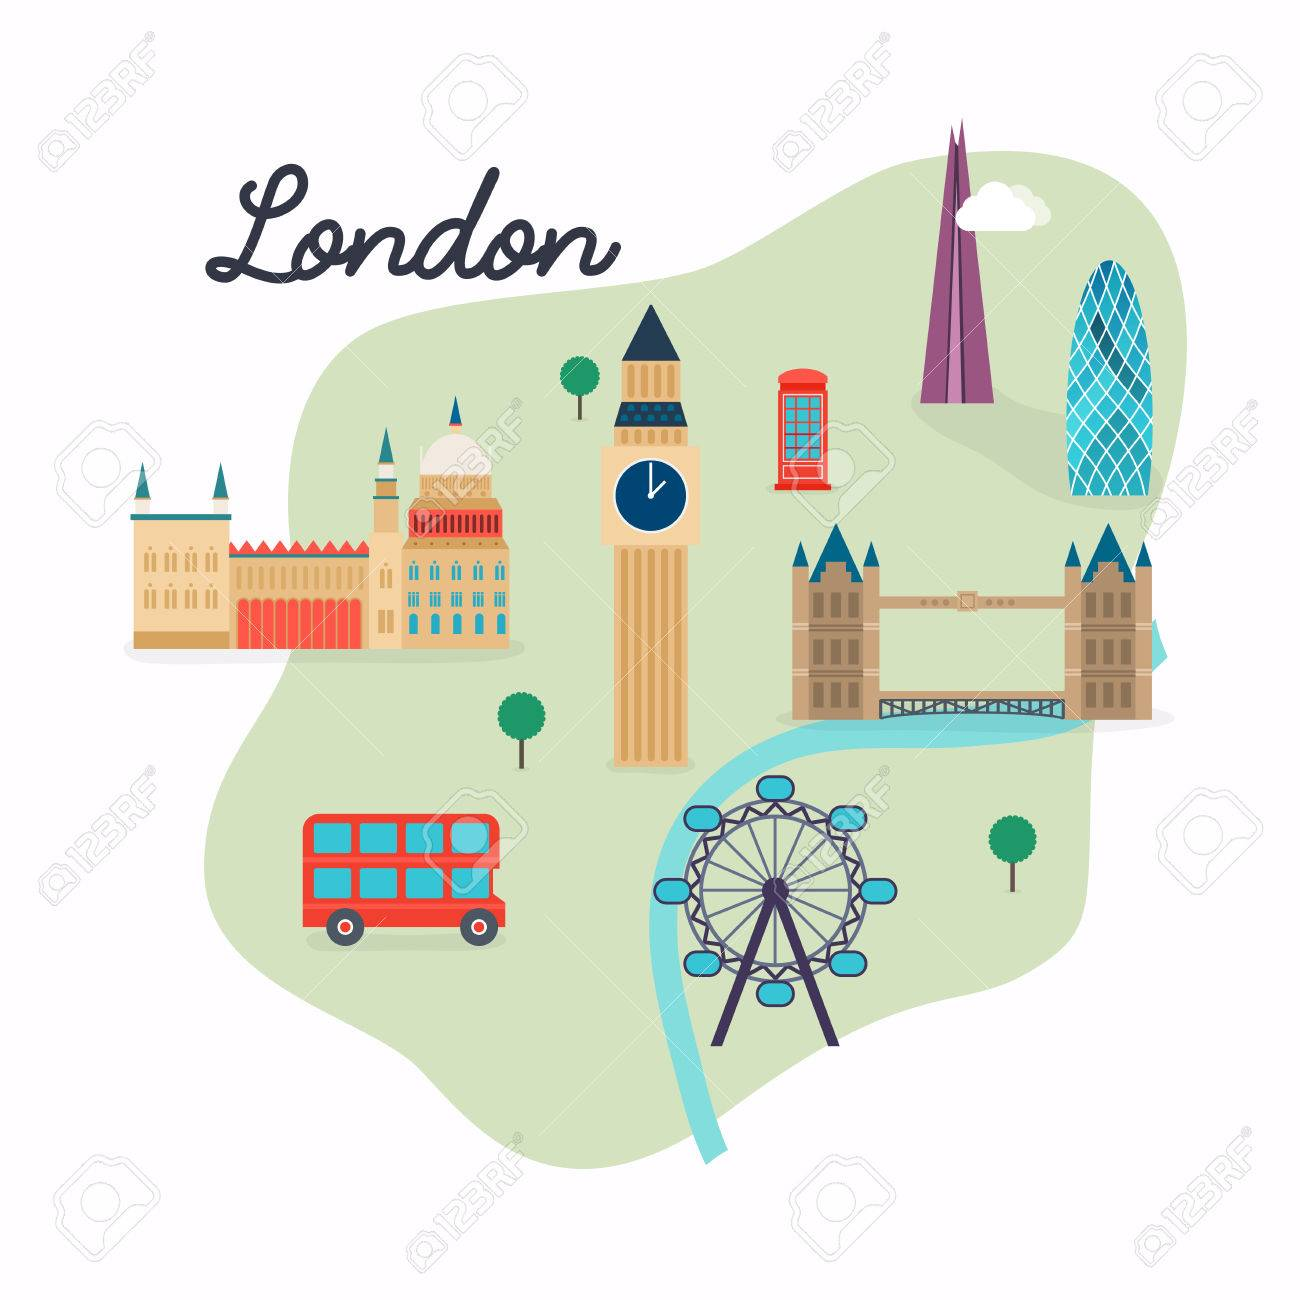 London Landmarks Map.London Travel Map And Vector Landscape Of Buildings And Famous